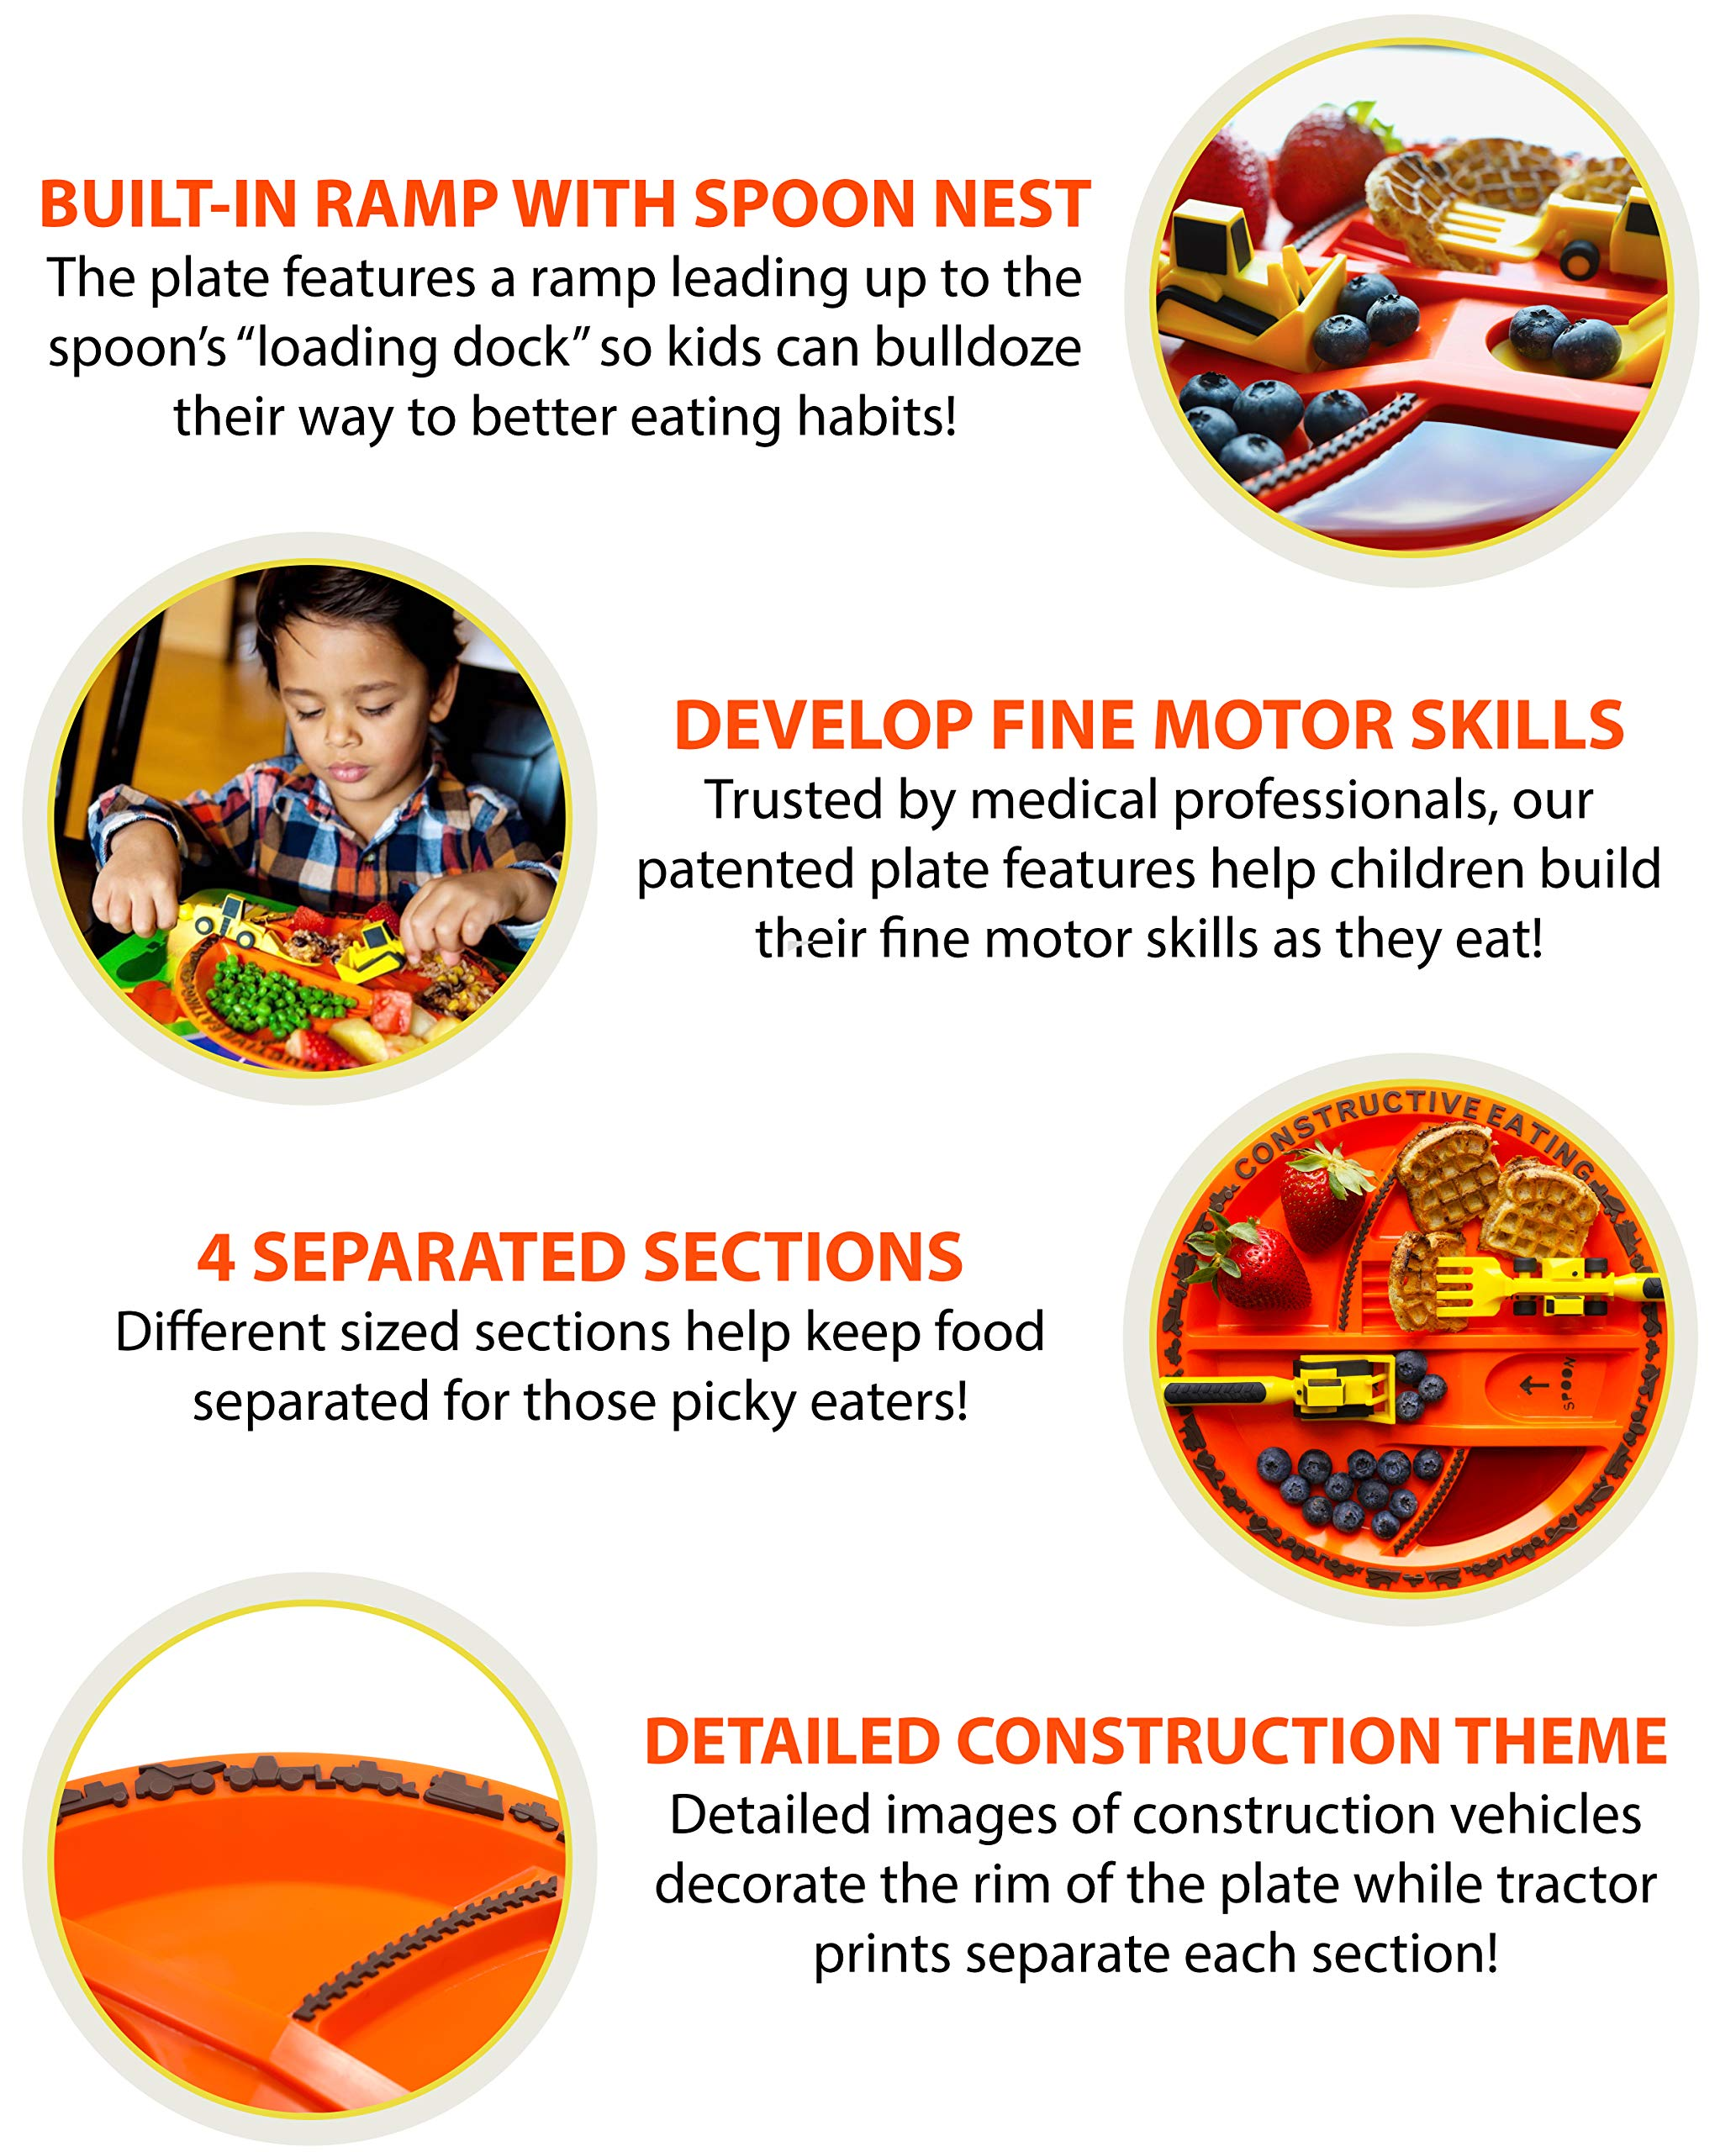 Construction Combo with Utensil Set Plate and Placemat Constructive Eating